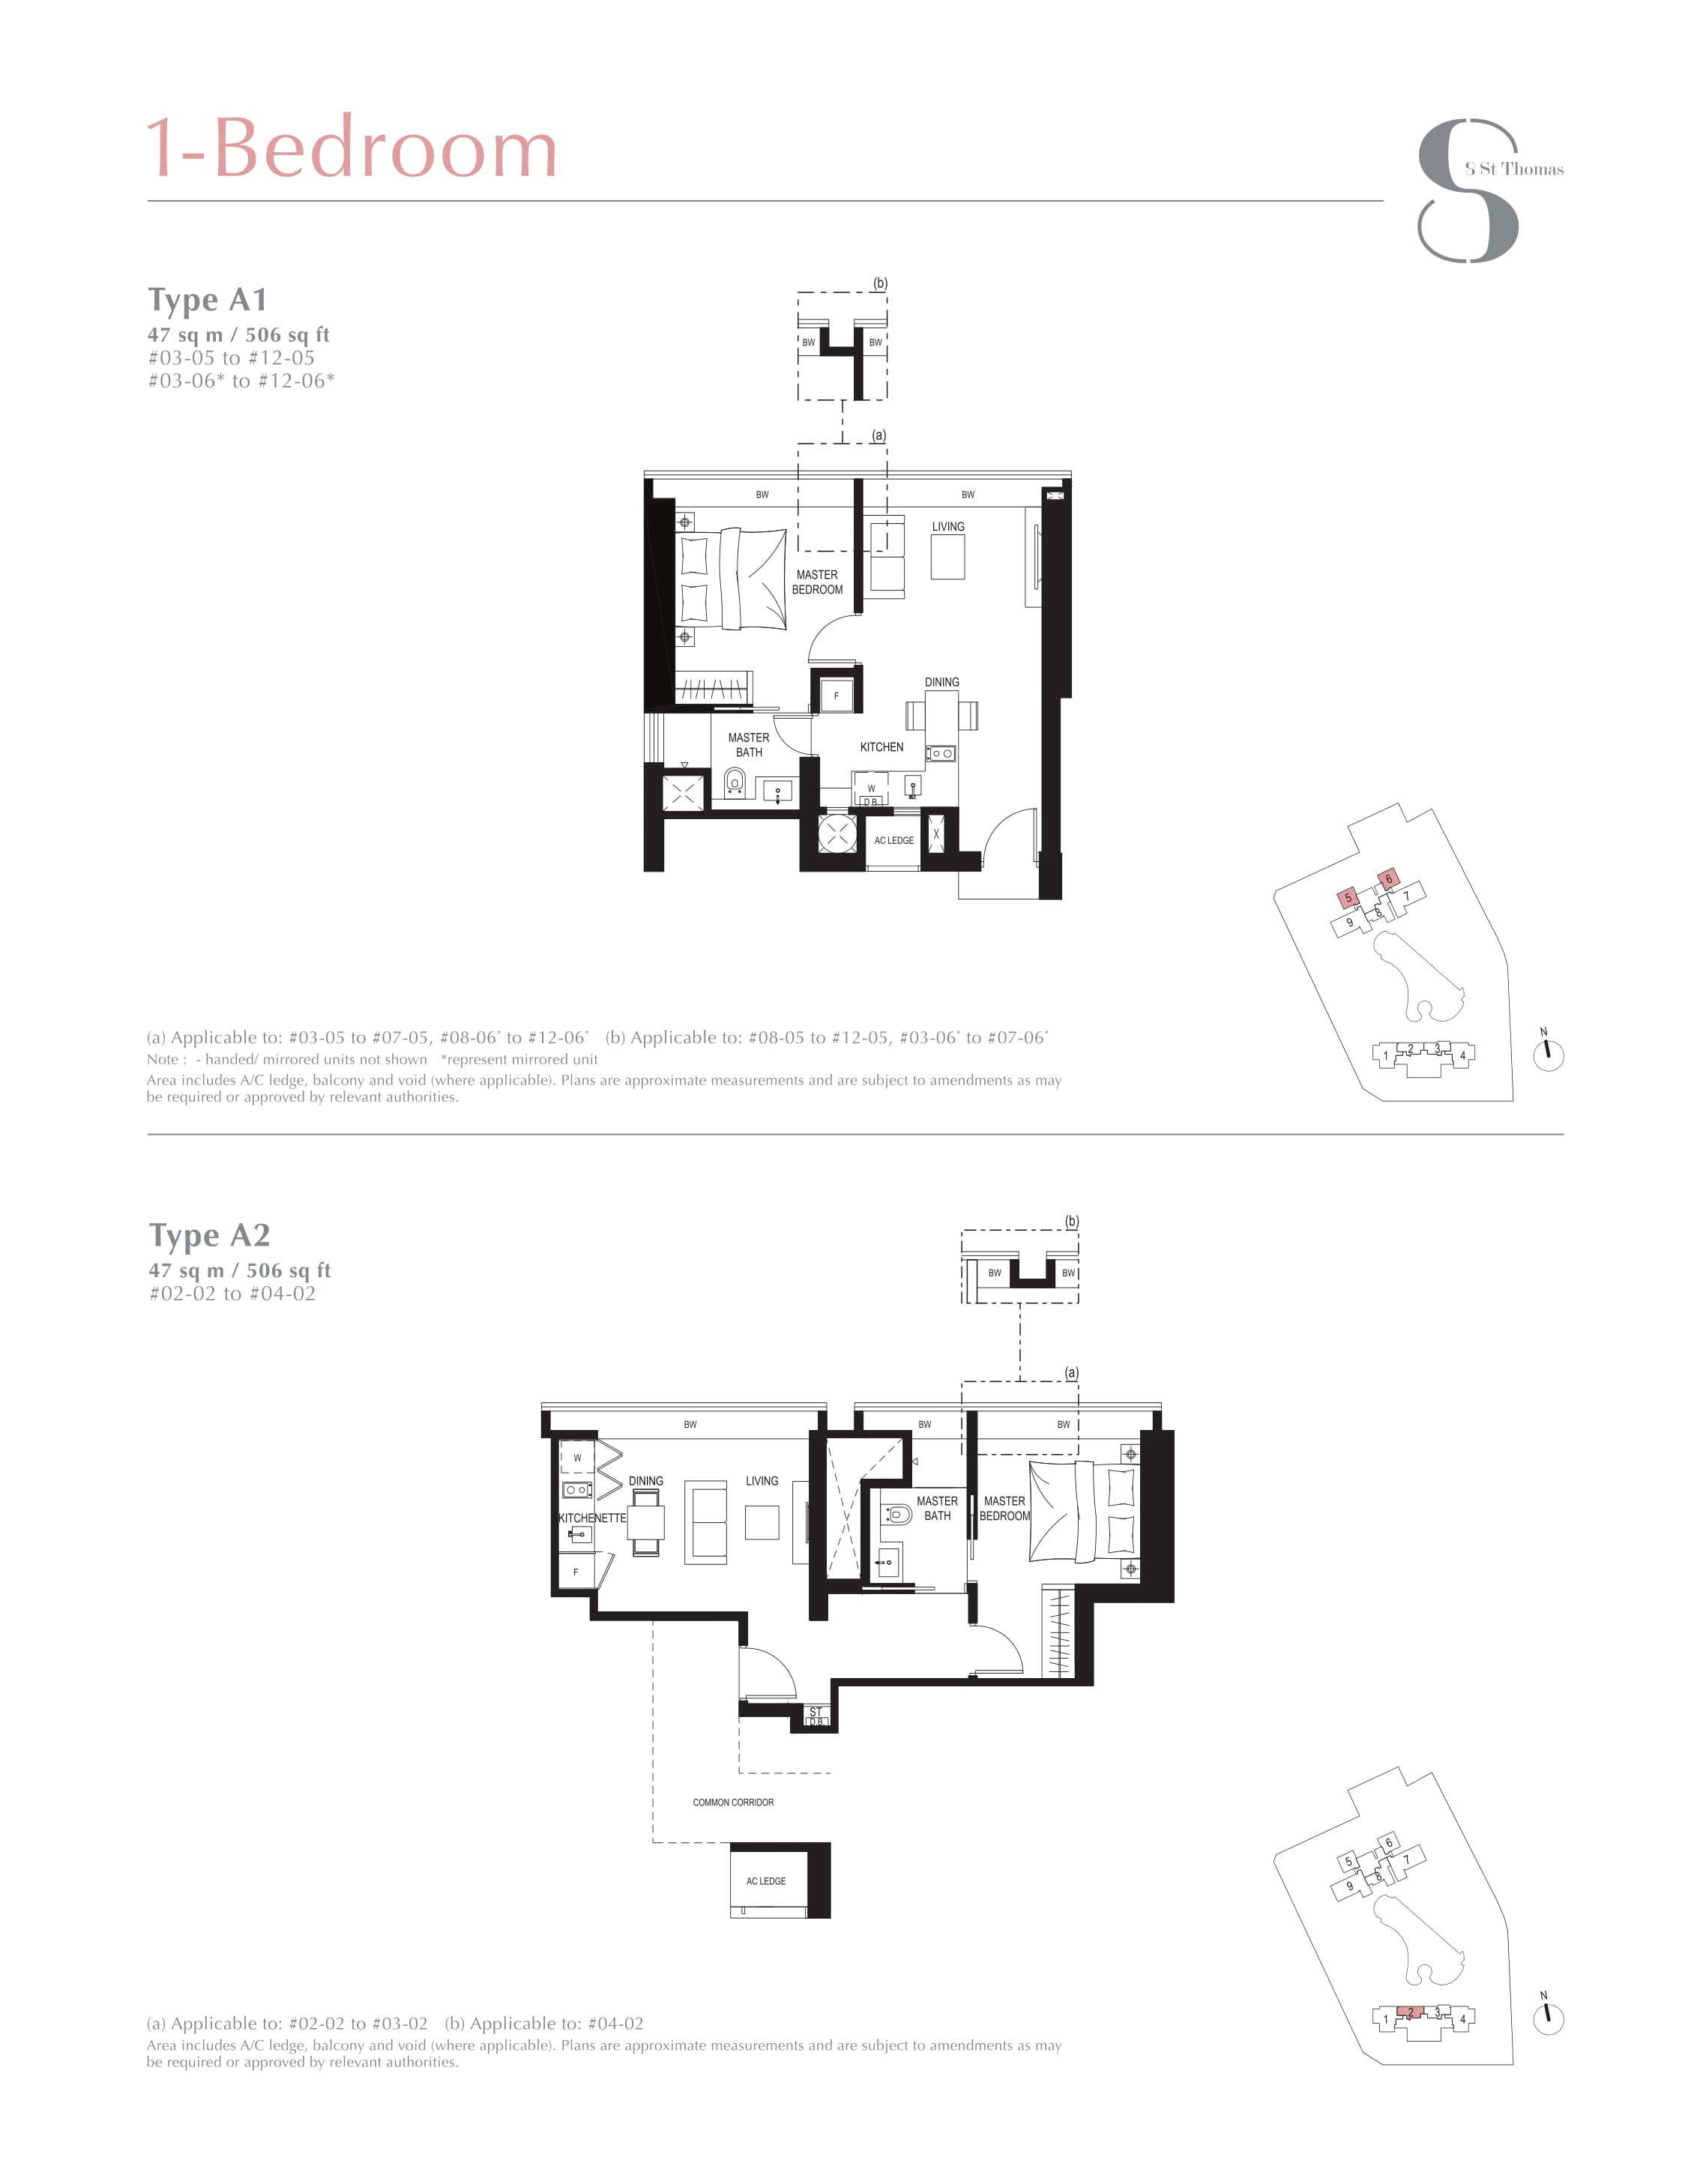 8 St Thomas 1 Bedroom Floor Plans Type A1 and A2